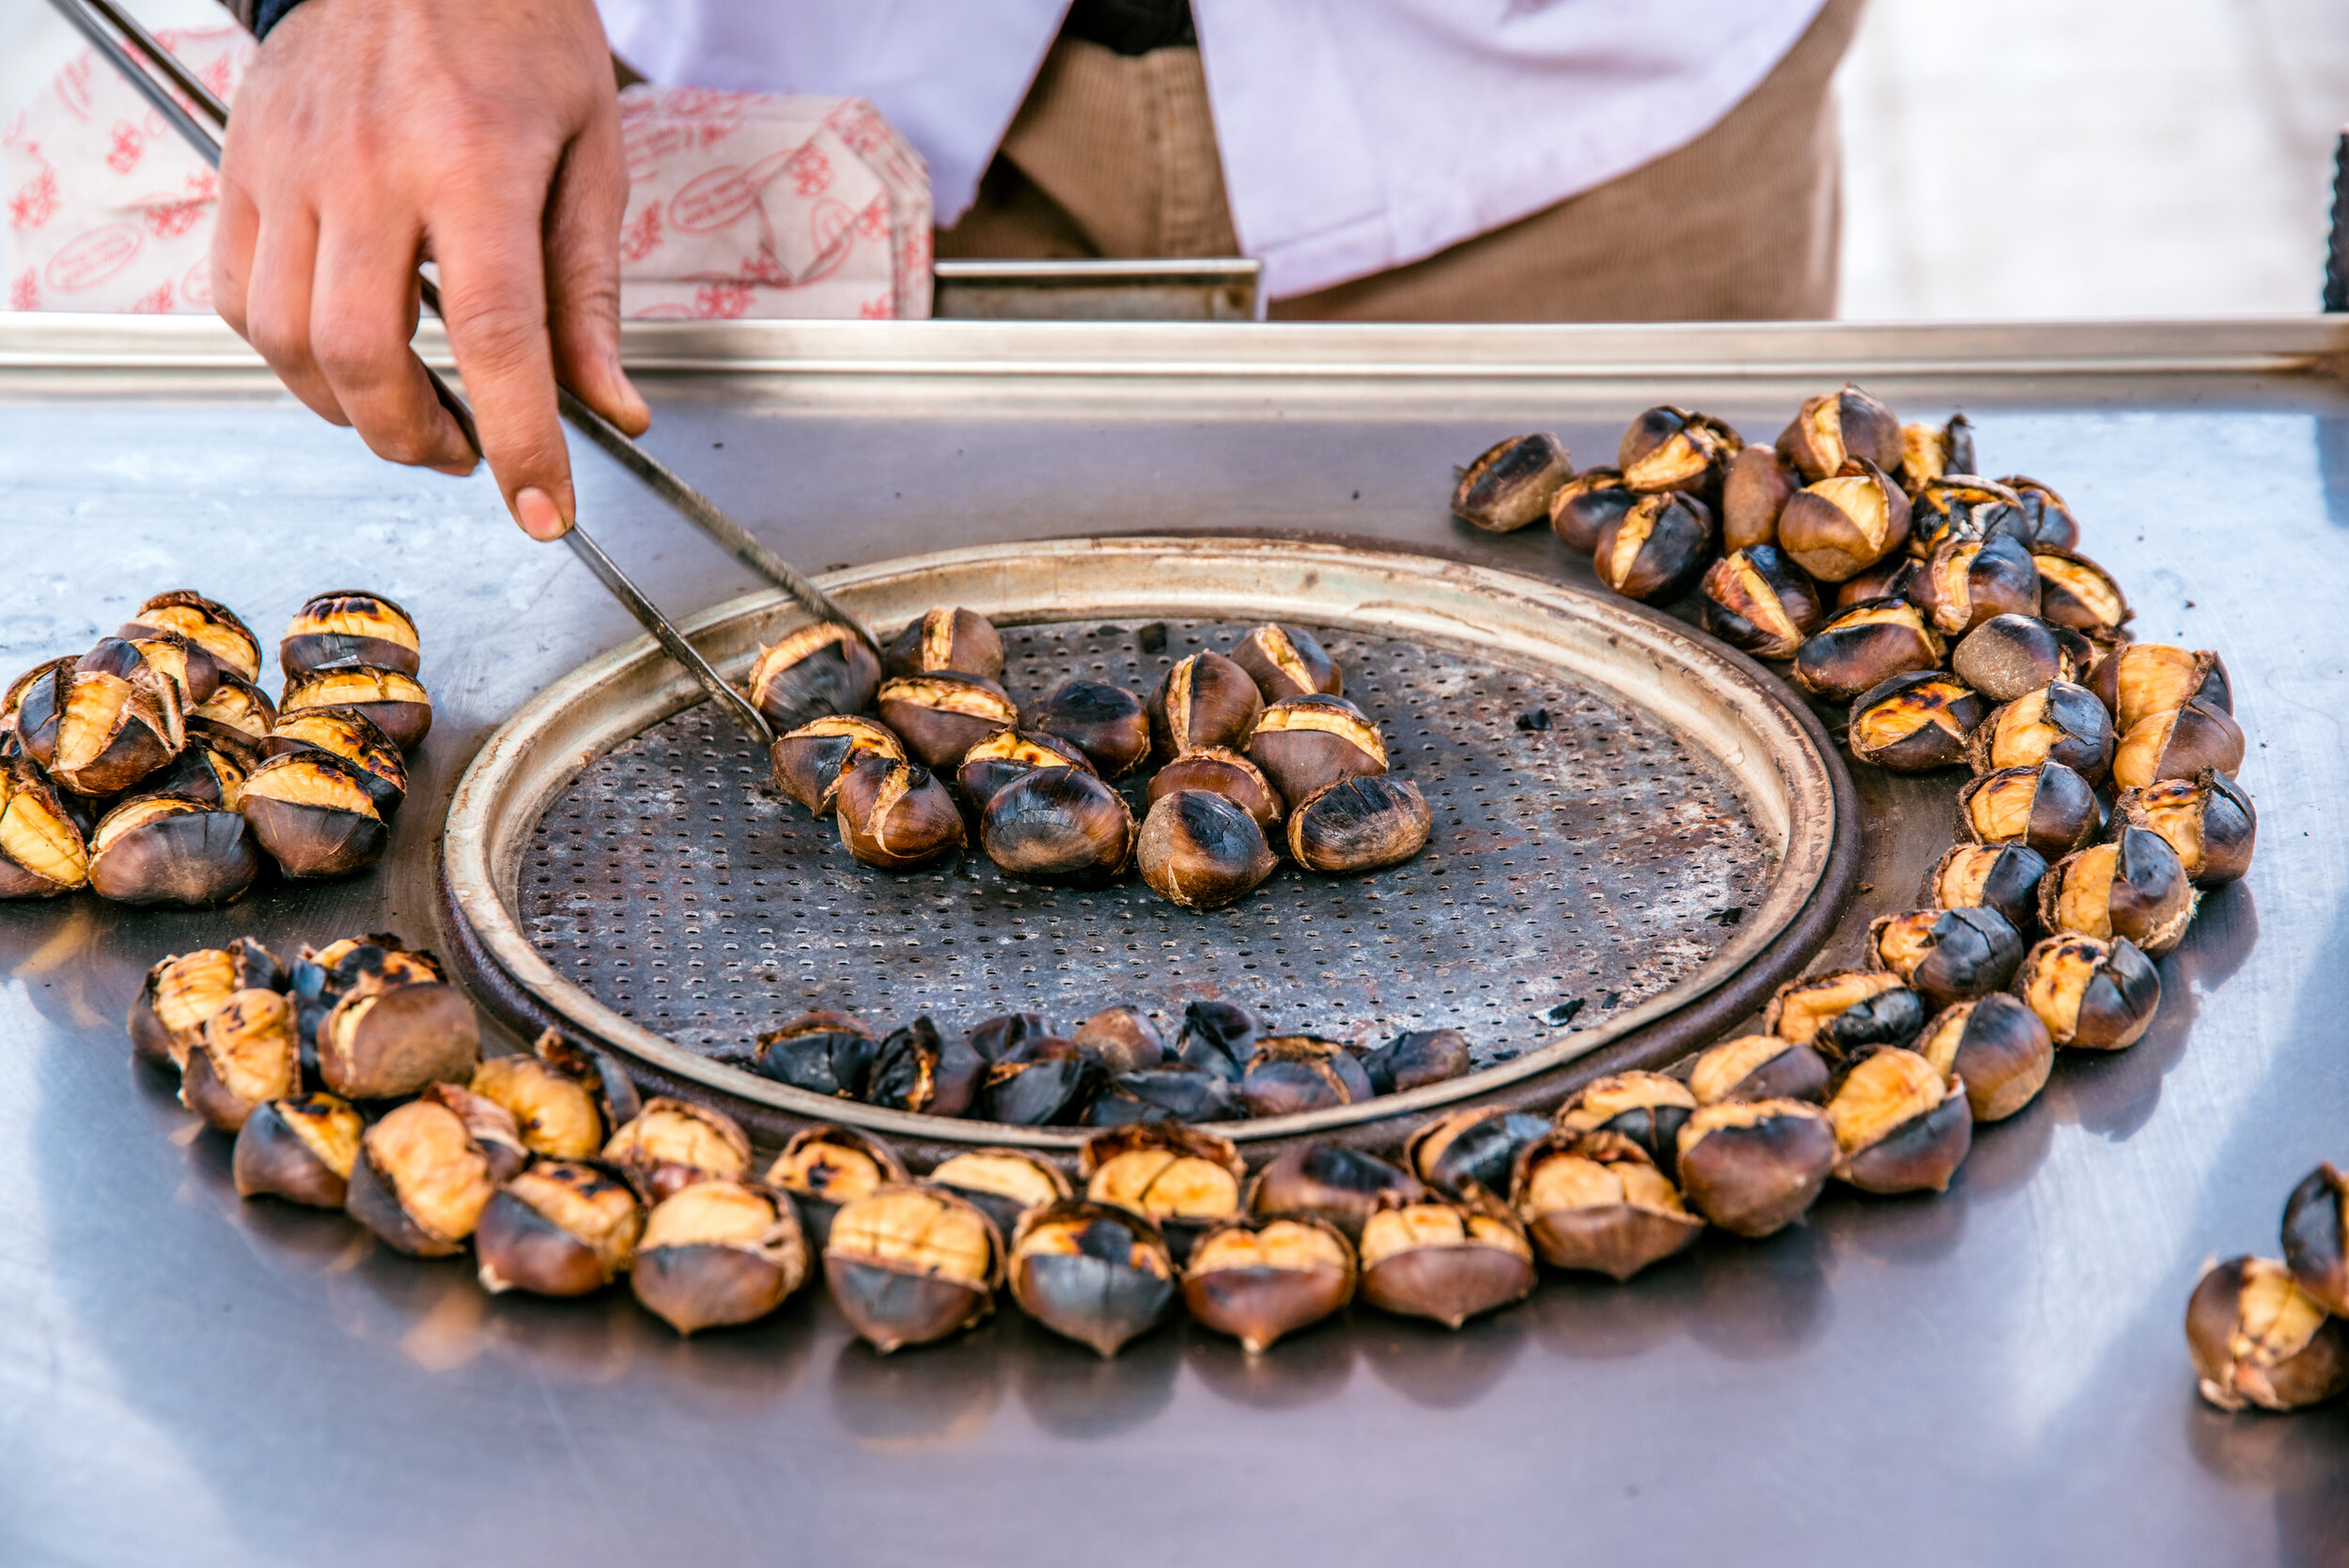 Kestane, chestnuts, are a healthy Istanbul street food.